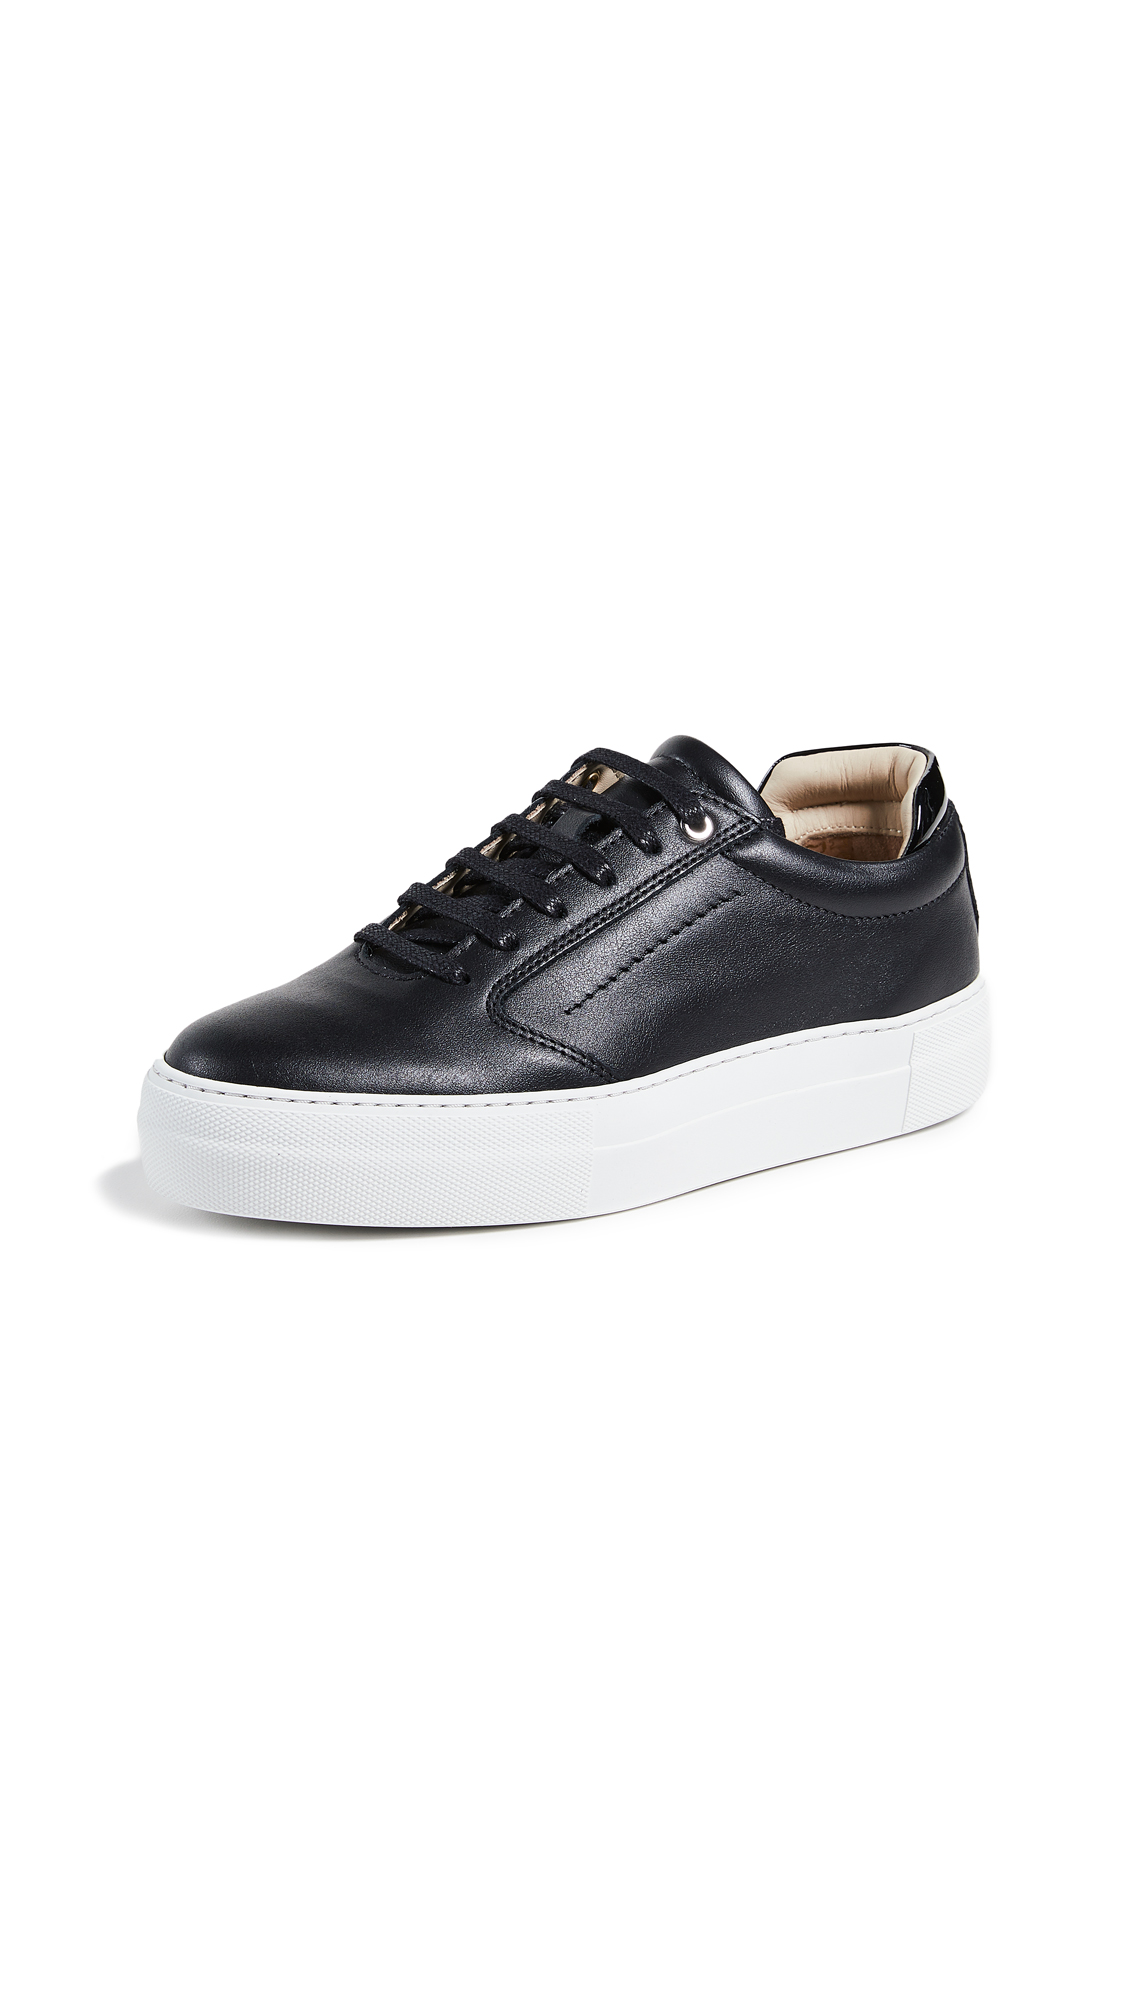 WANT Les Essentiels Lalibela Sneakers - Black/White